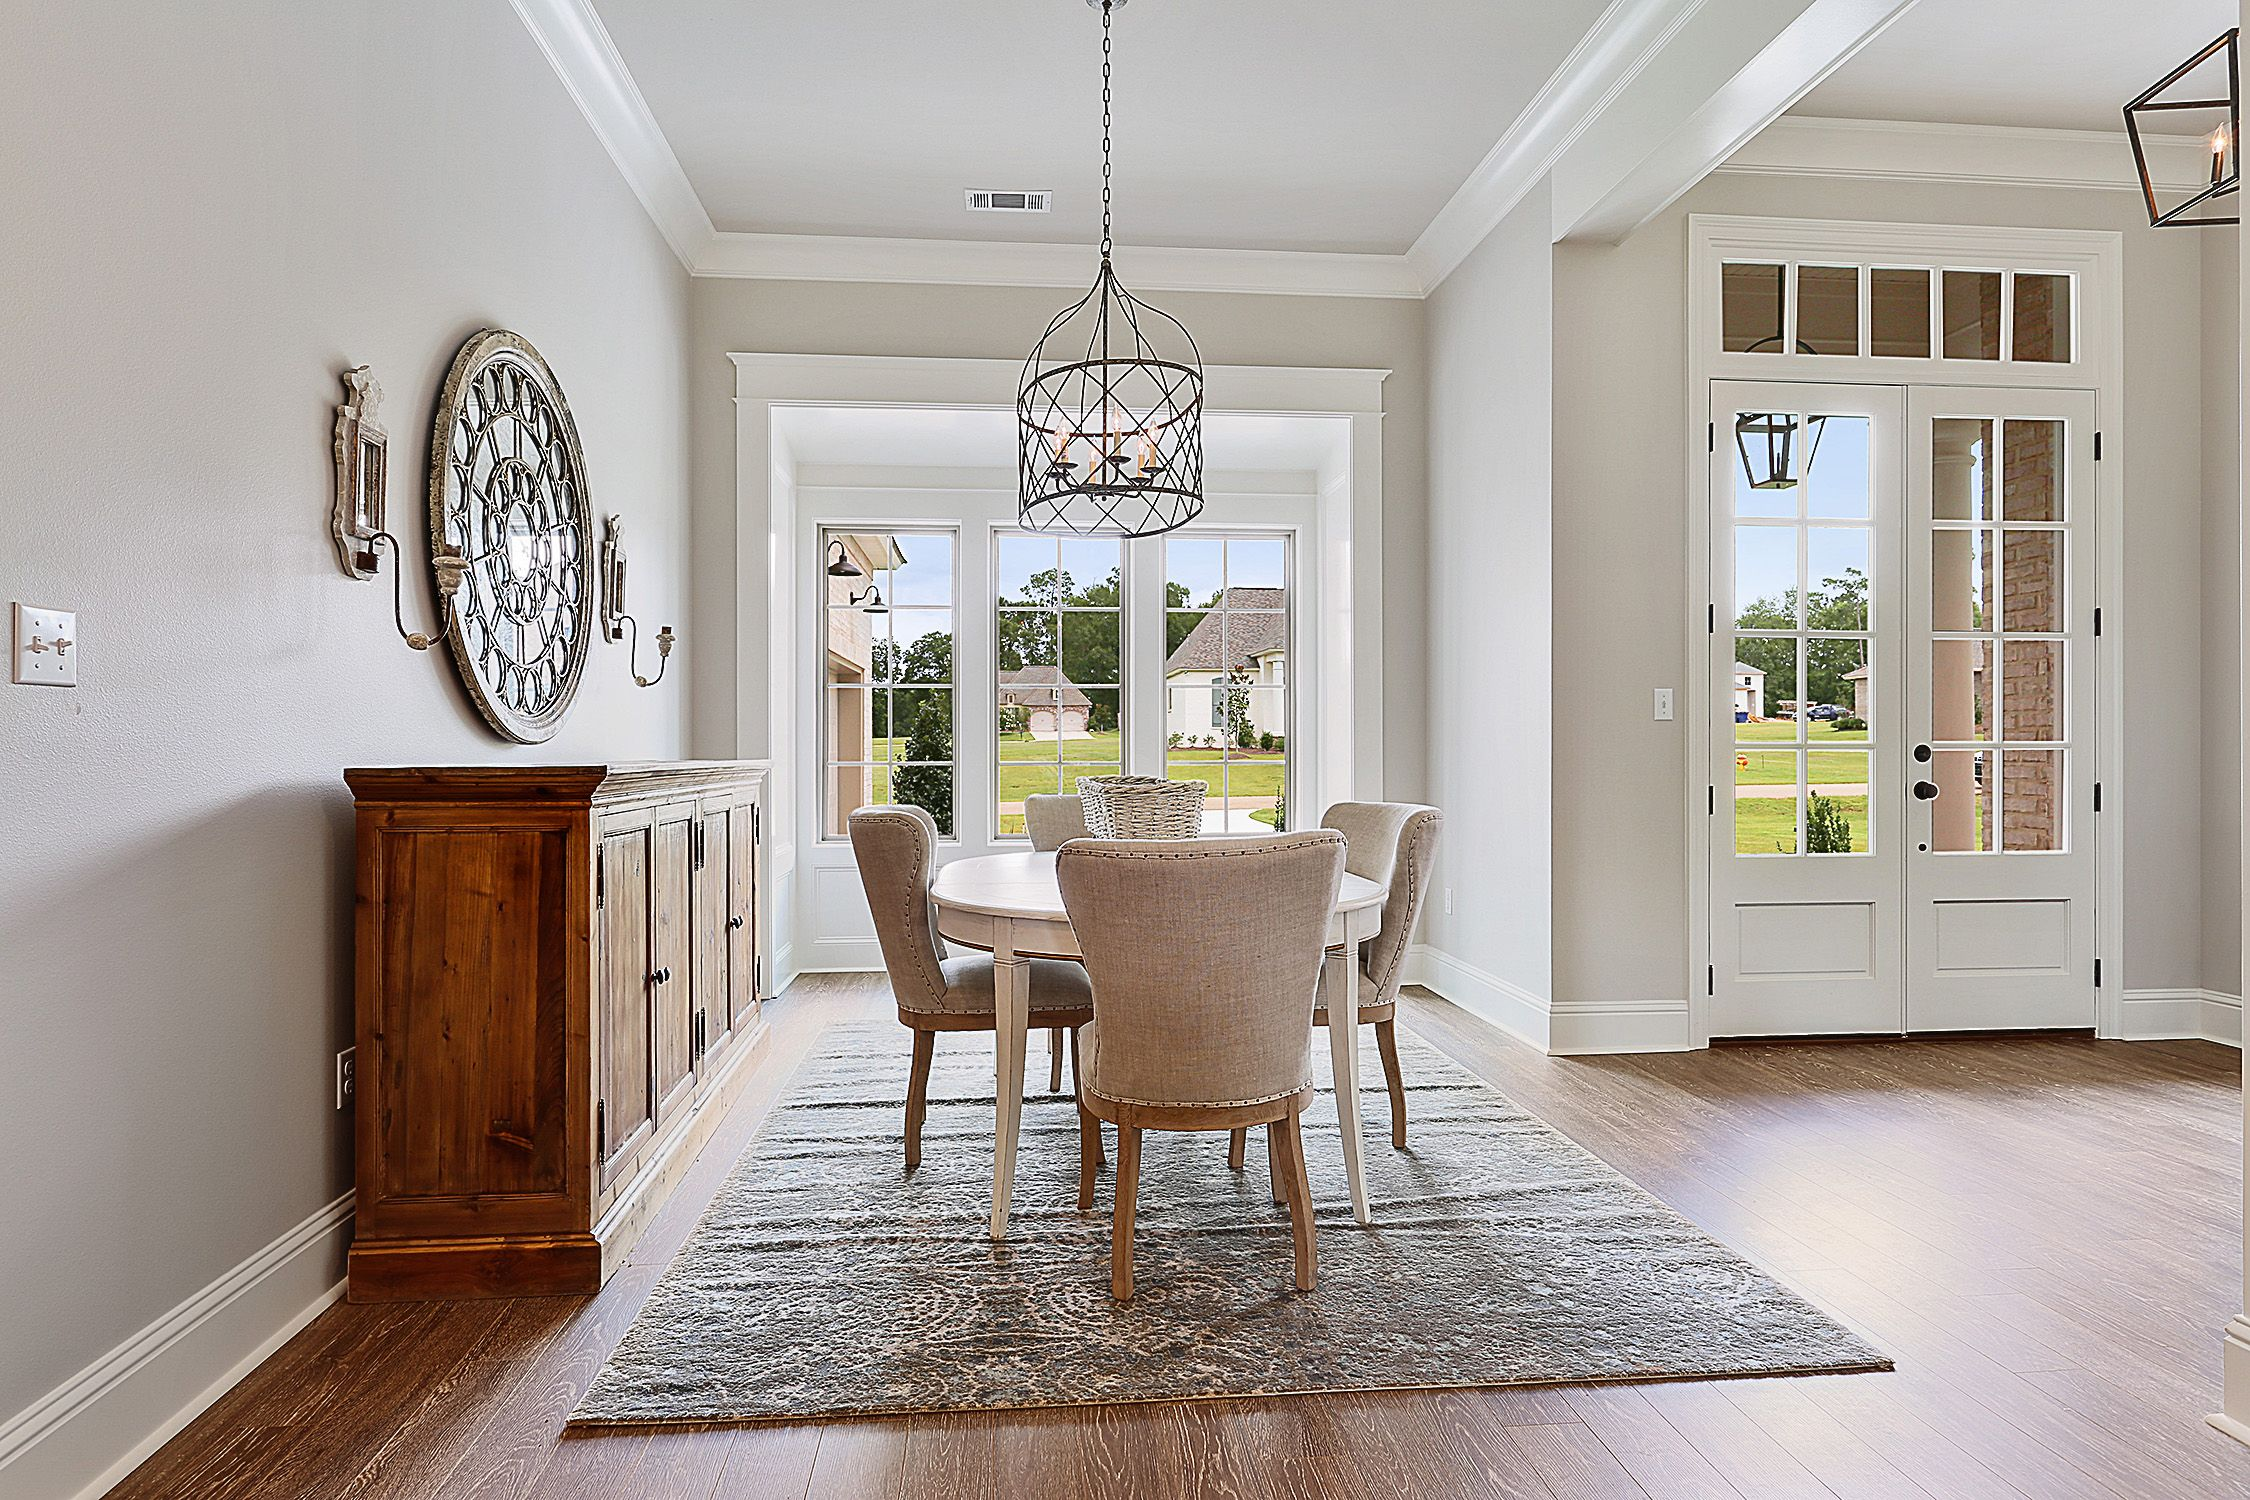 Kitchen featured in the Turnberry By Highland Homes in New Orleans, LA